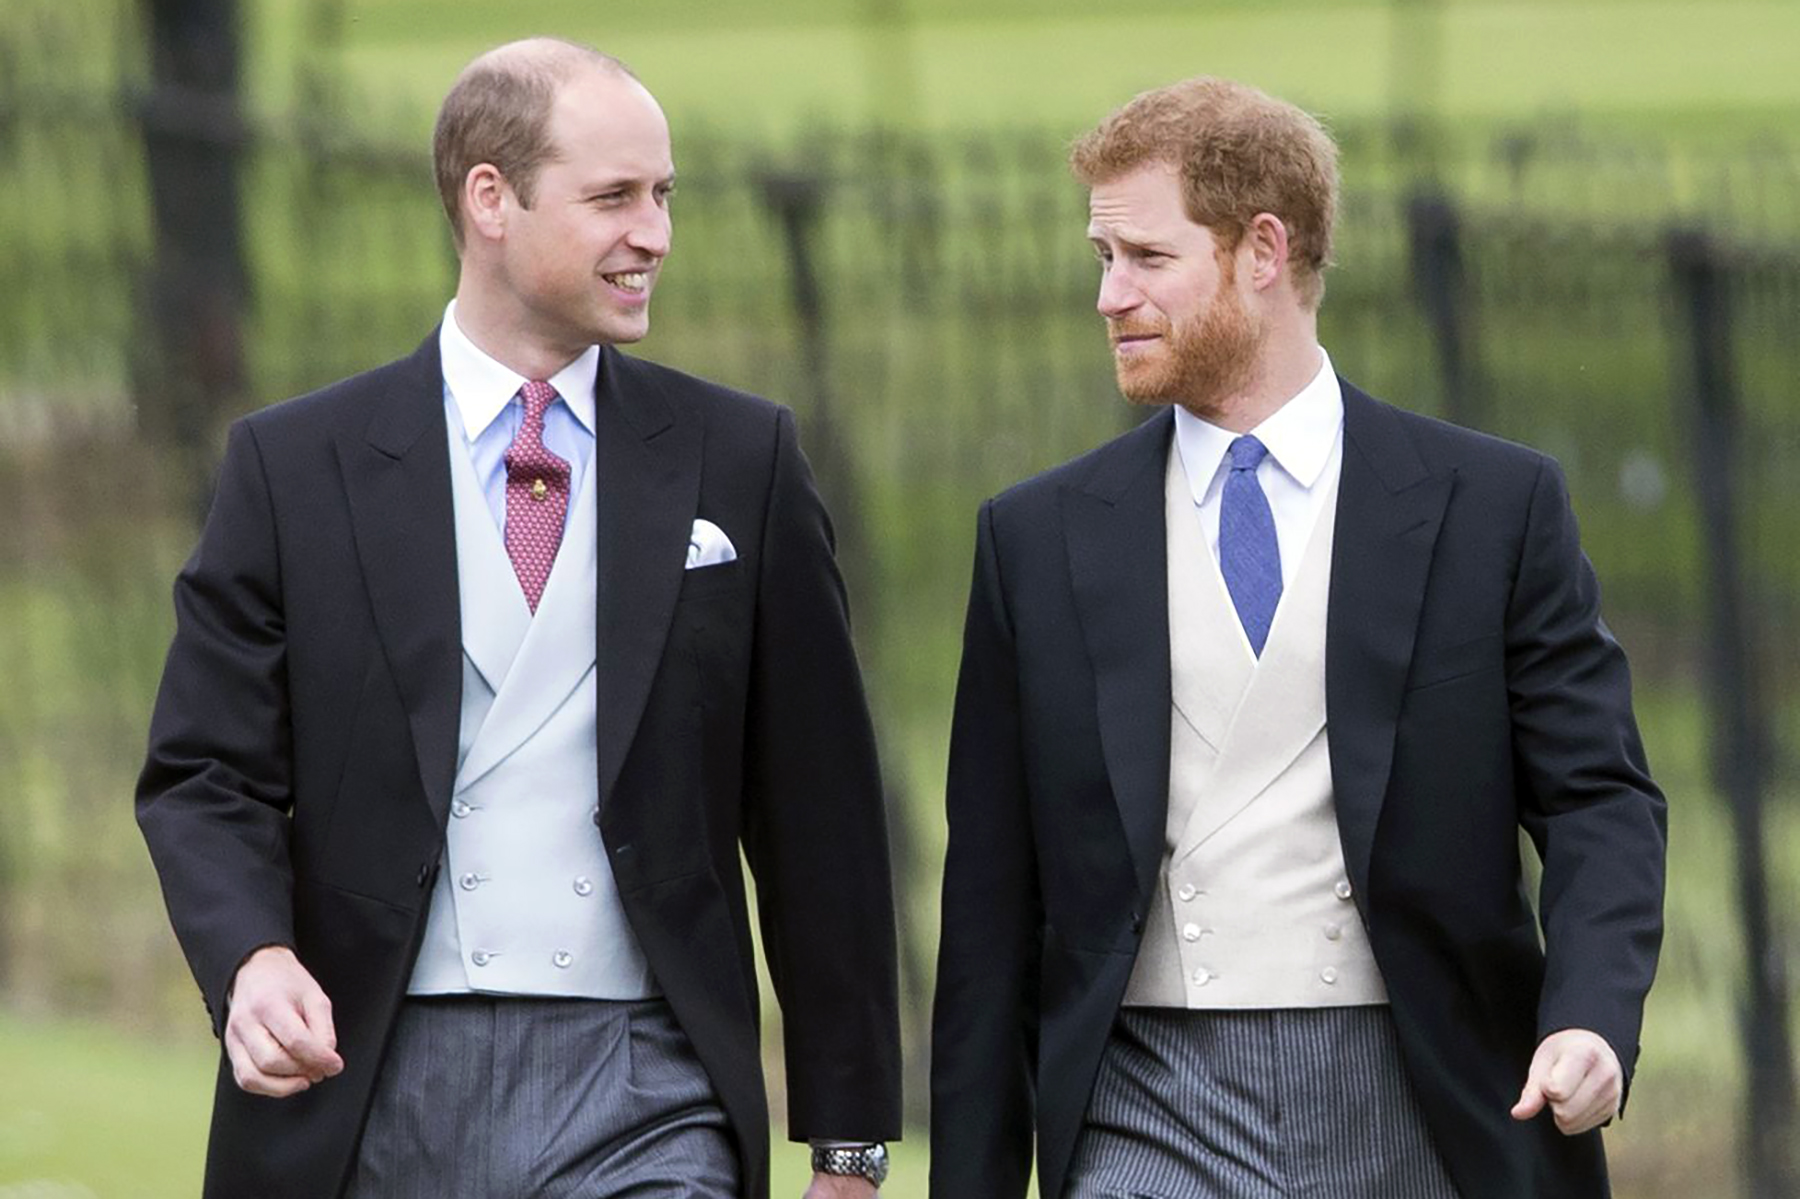 Prince William and Prince Harry at the wedding of James Matthews and Pippa Middleton on May 20, 2017.